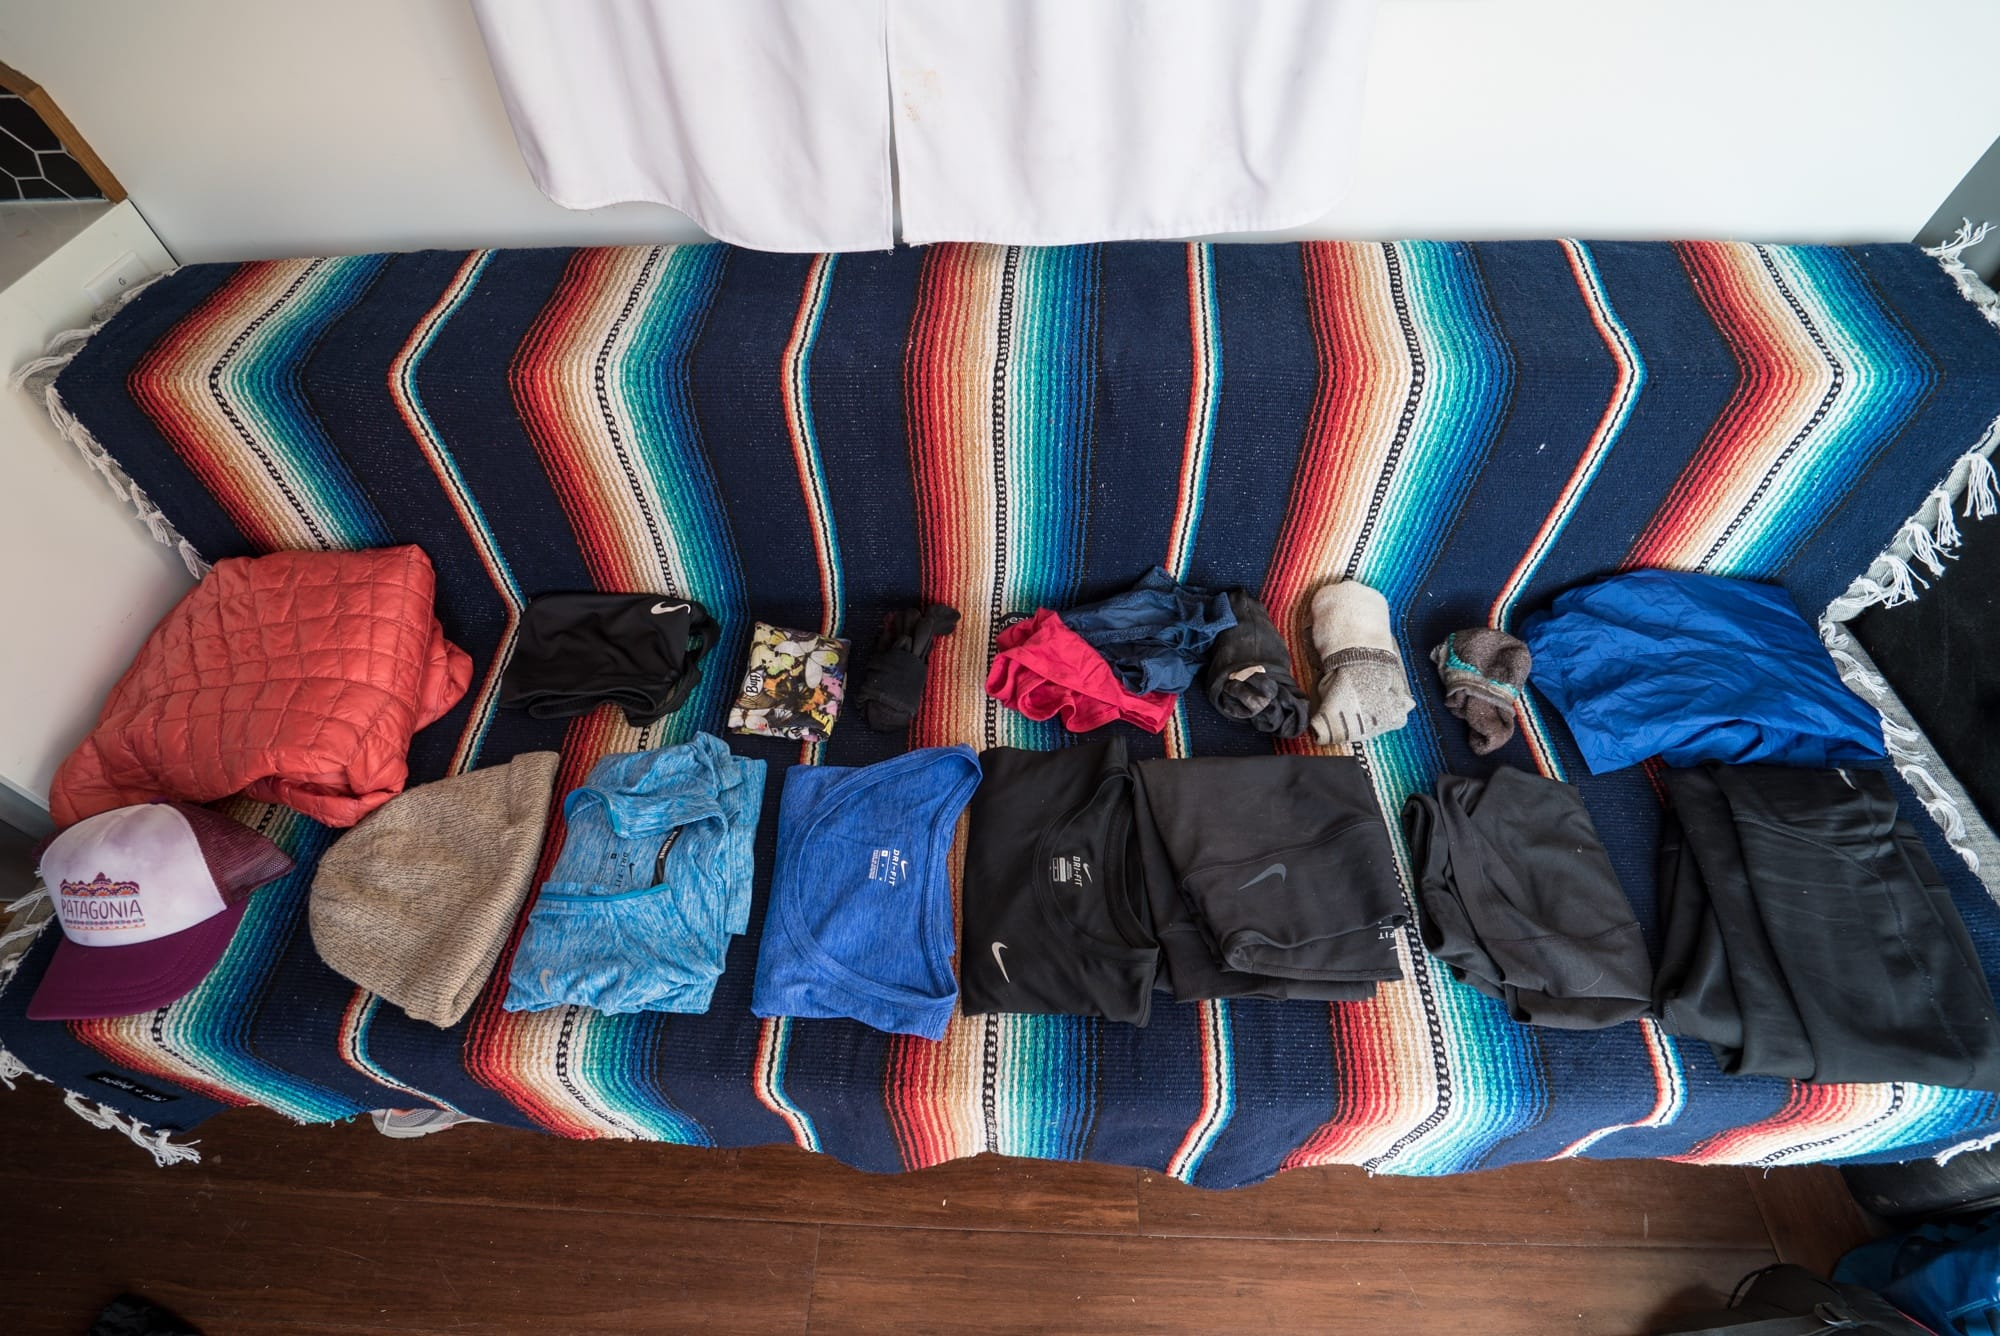 All of my clothes for a multiday backpacking trip